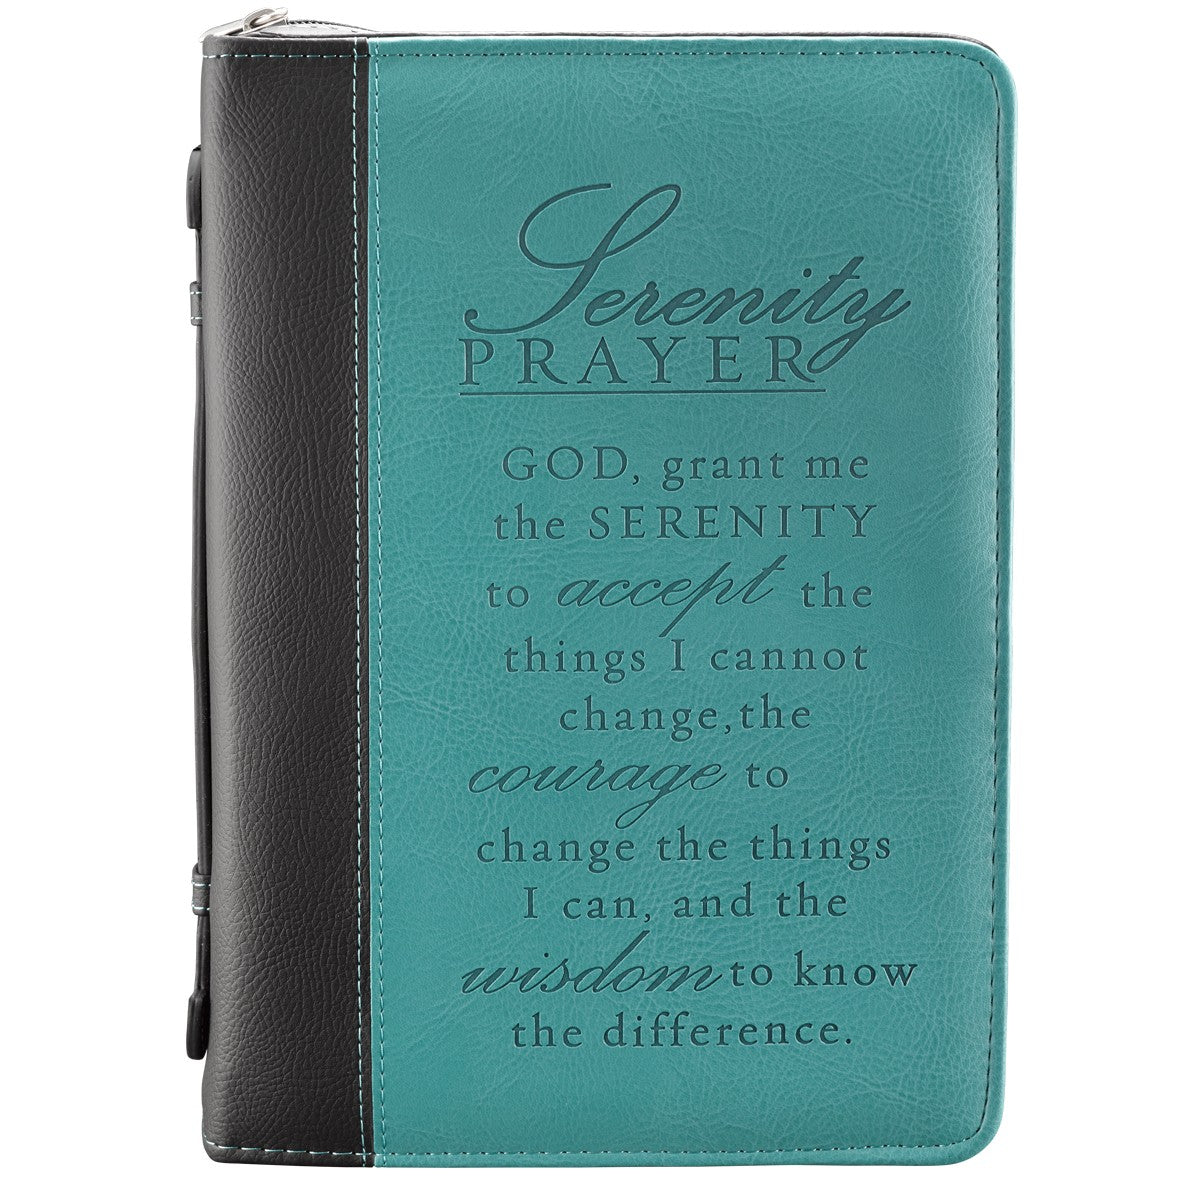 Serenity Prayer Two-tone Aqua Faux Leather Classic Bible Cover